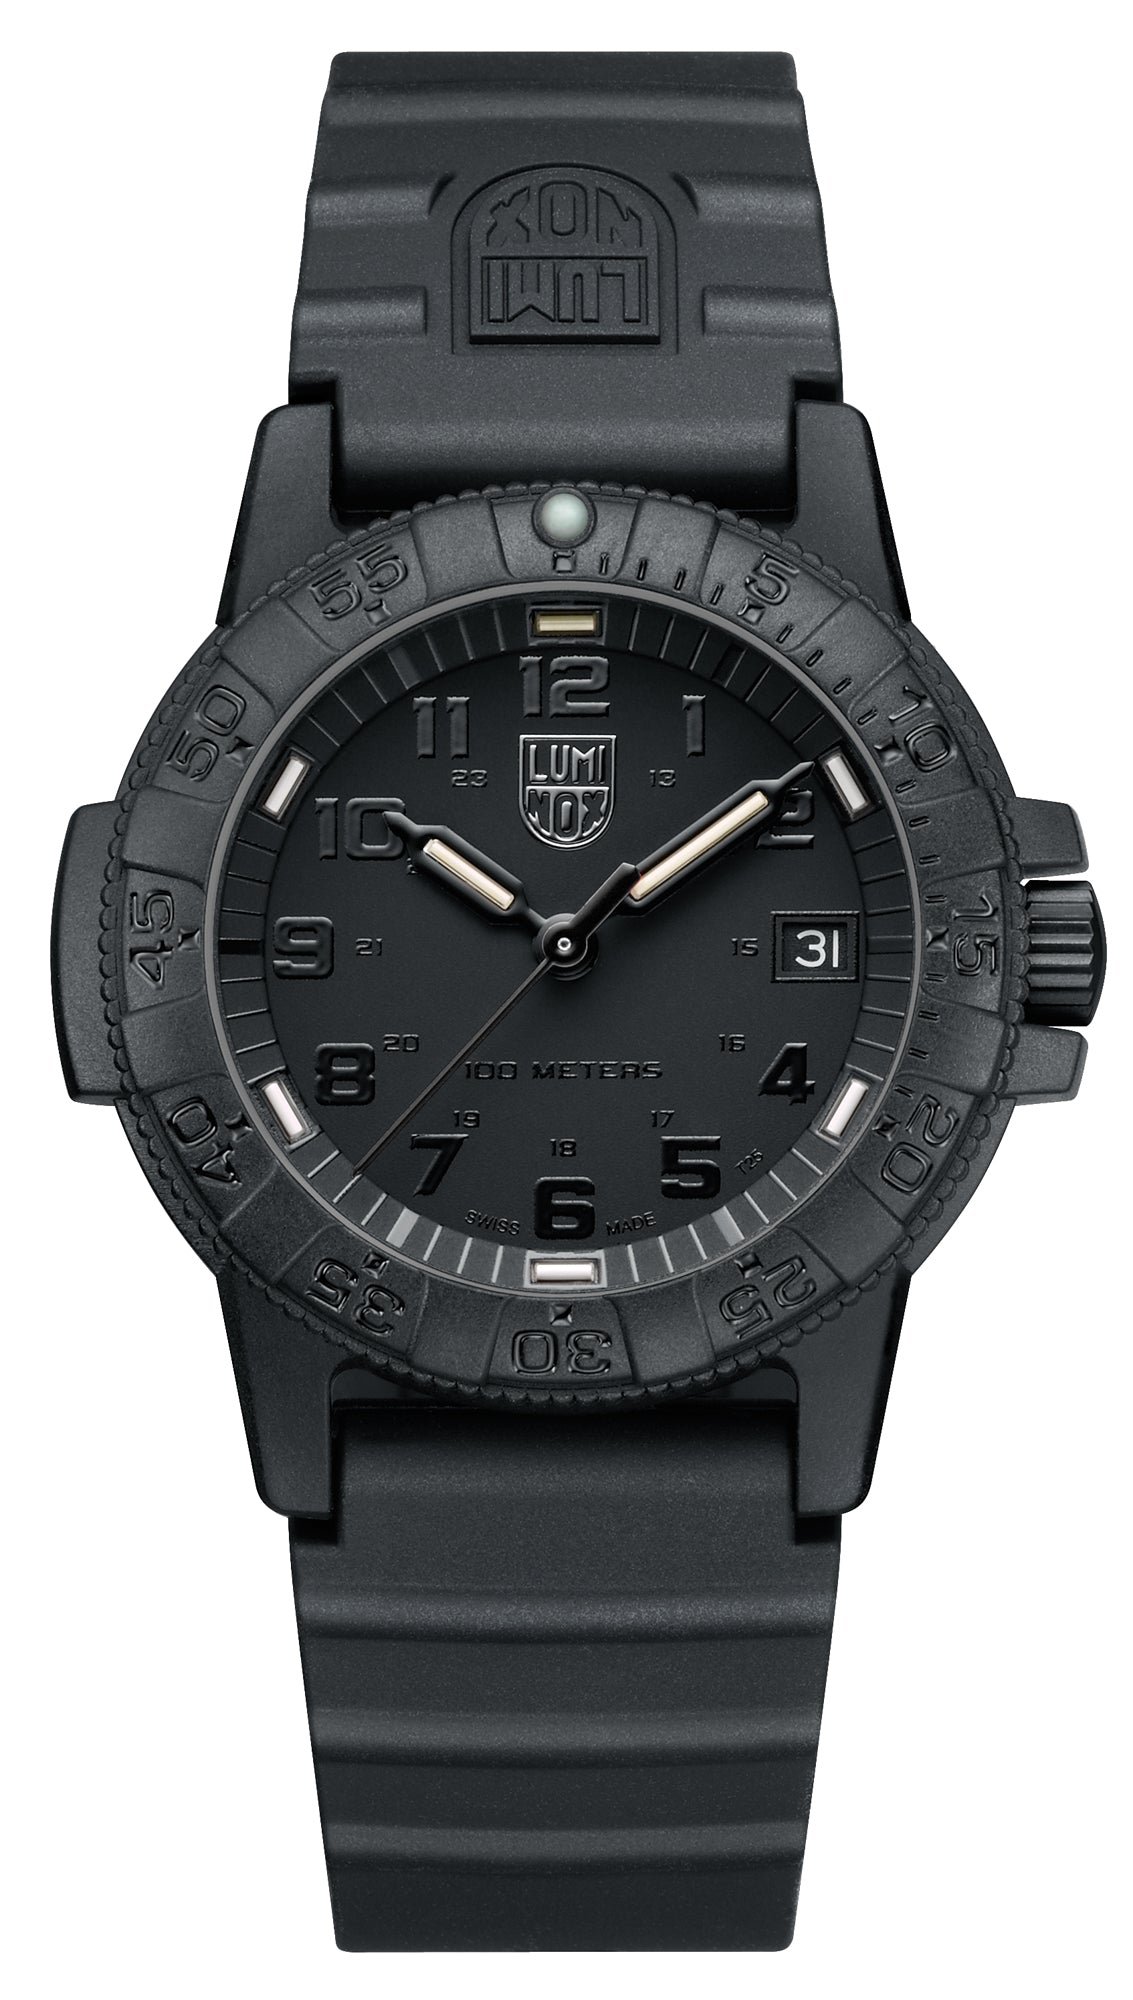 Leatherback Sea Turtle - 39mm 0301.BO